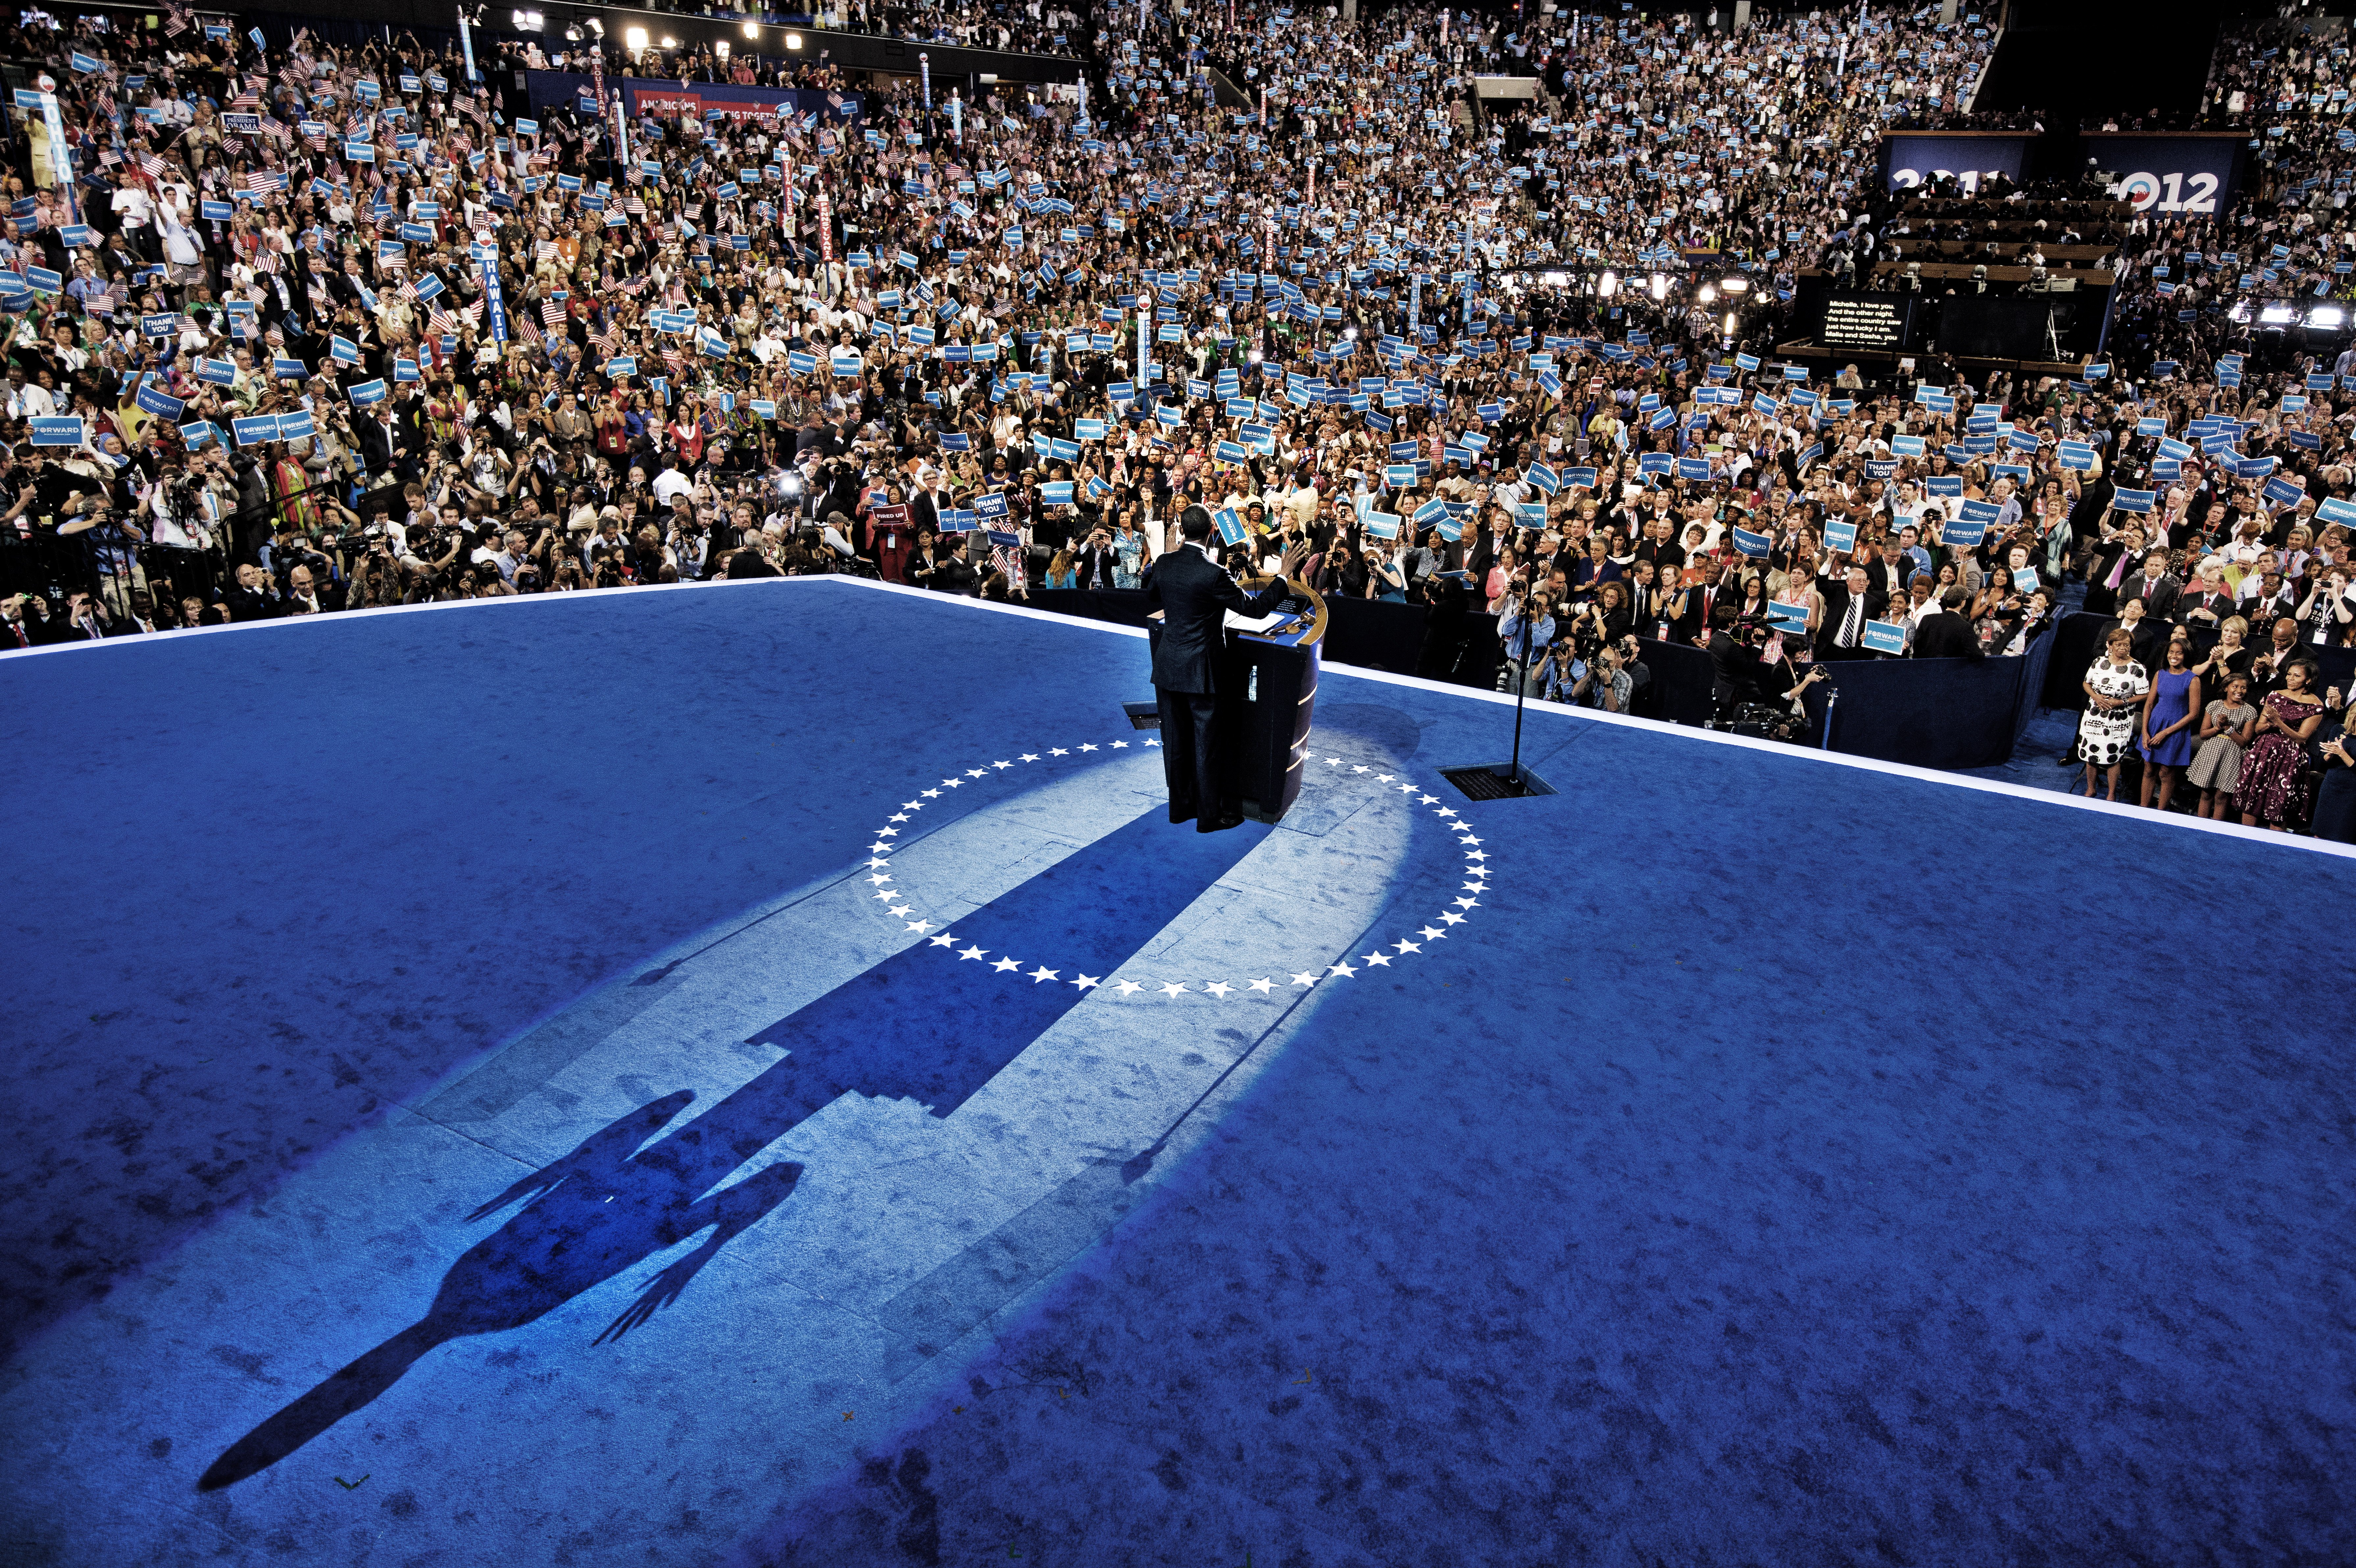 President Barack Obama onstage at the Democratic National Convention at the Time Warner Cable Arena on September 6, 2012 in Charlotte, N.C.